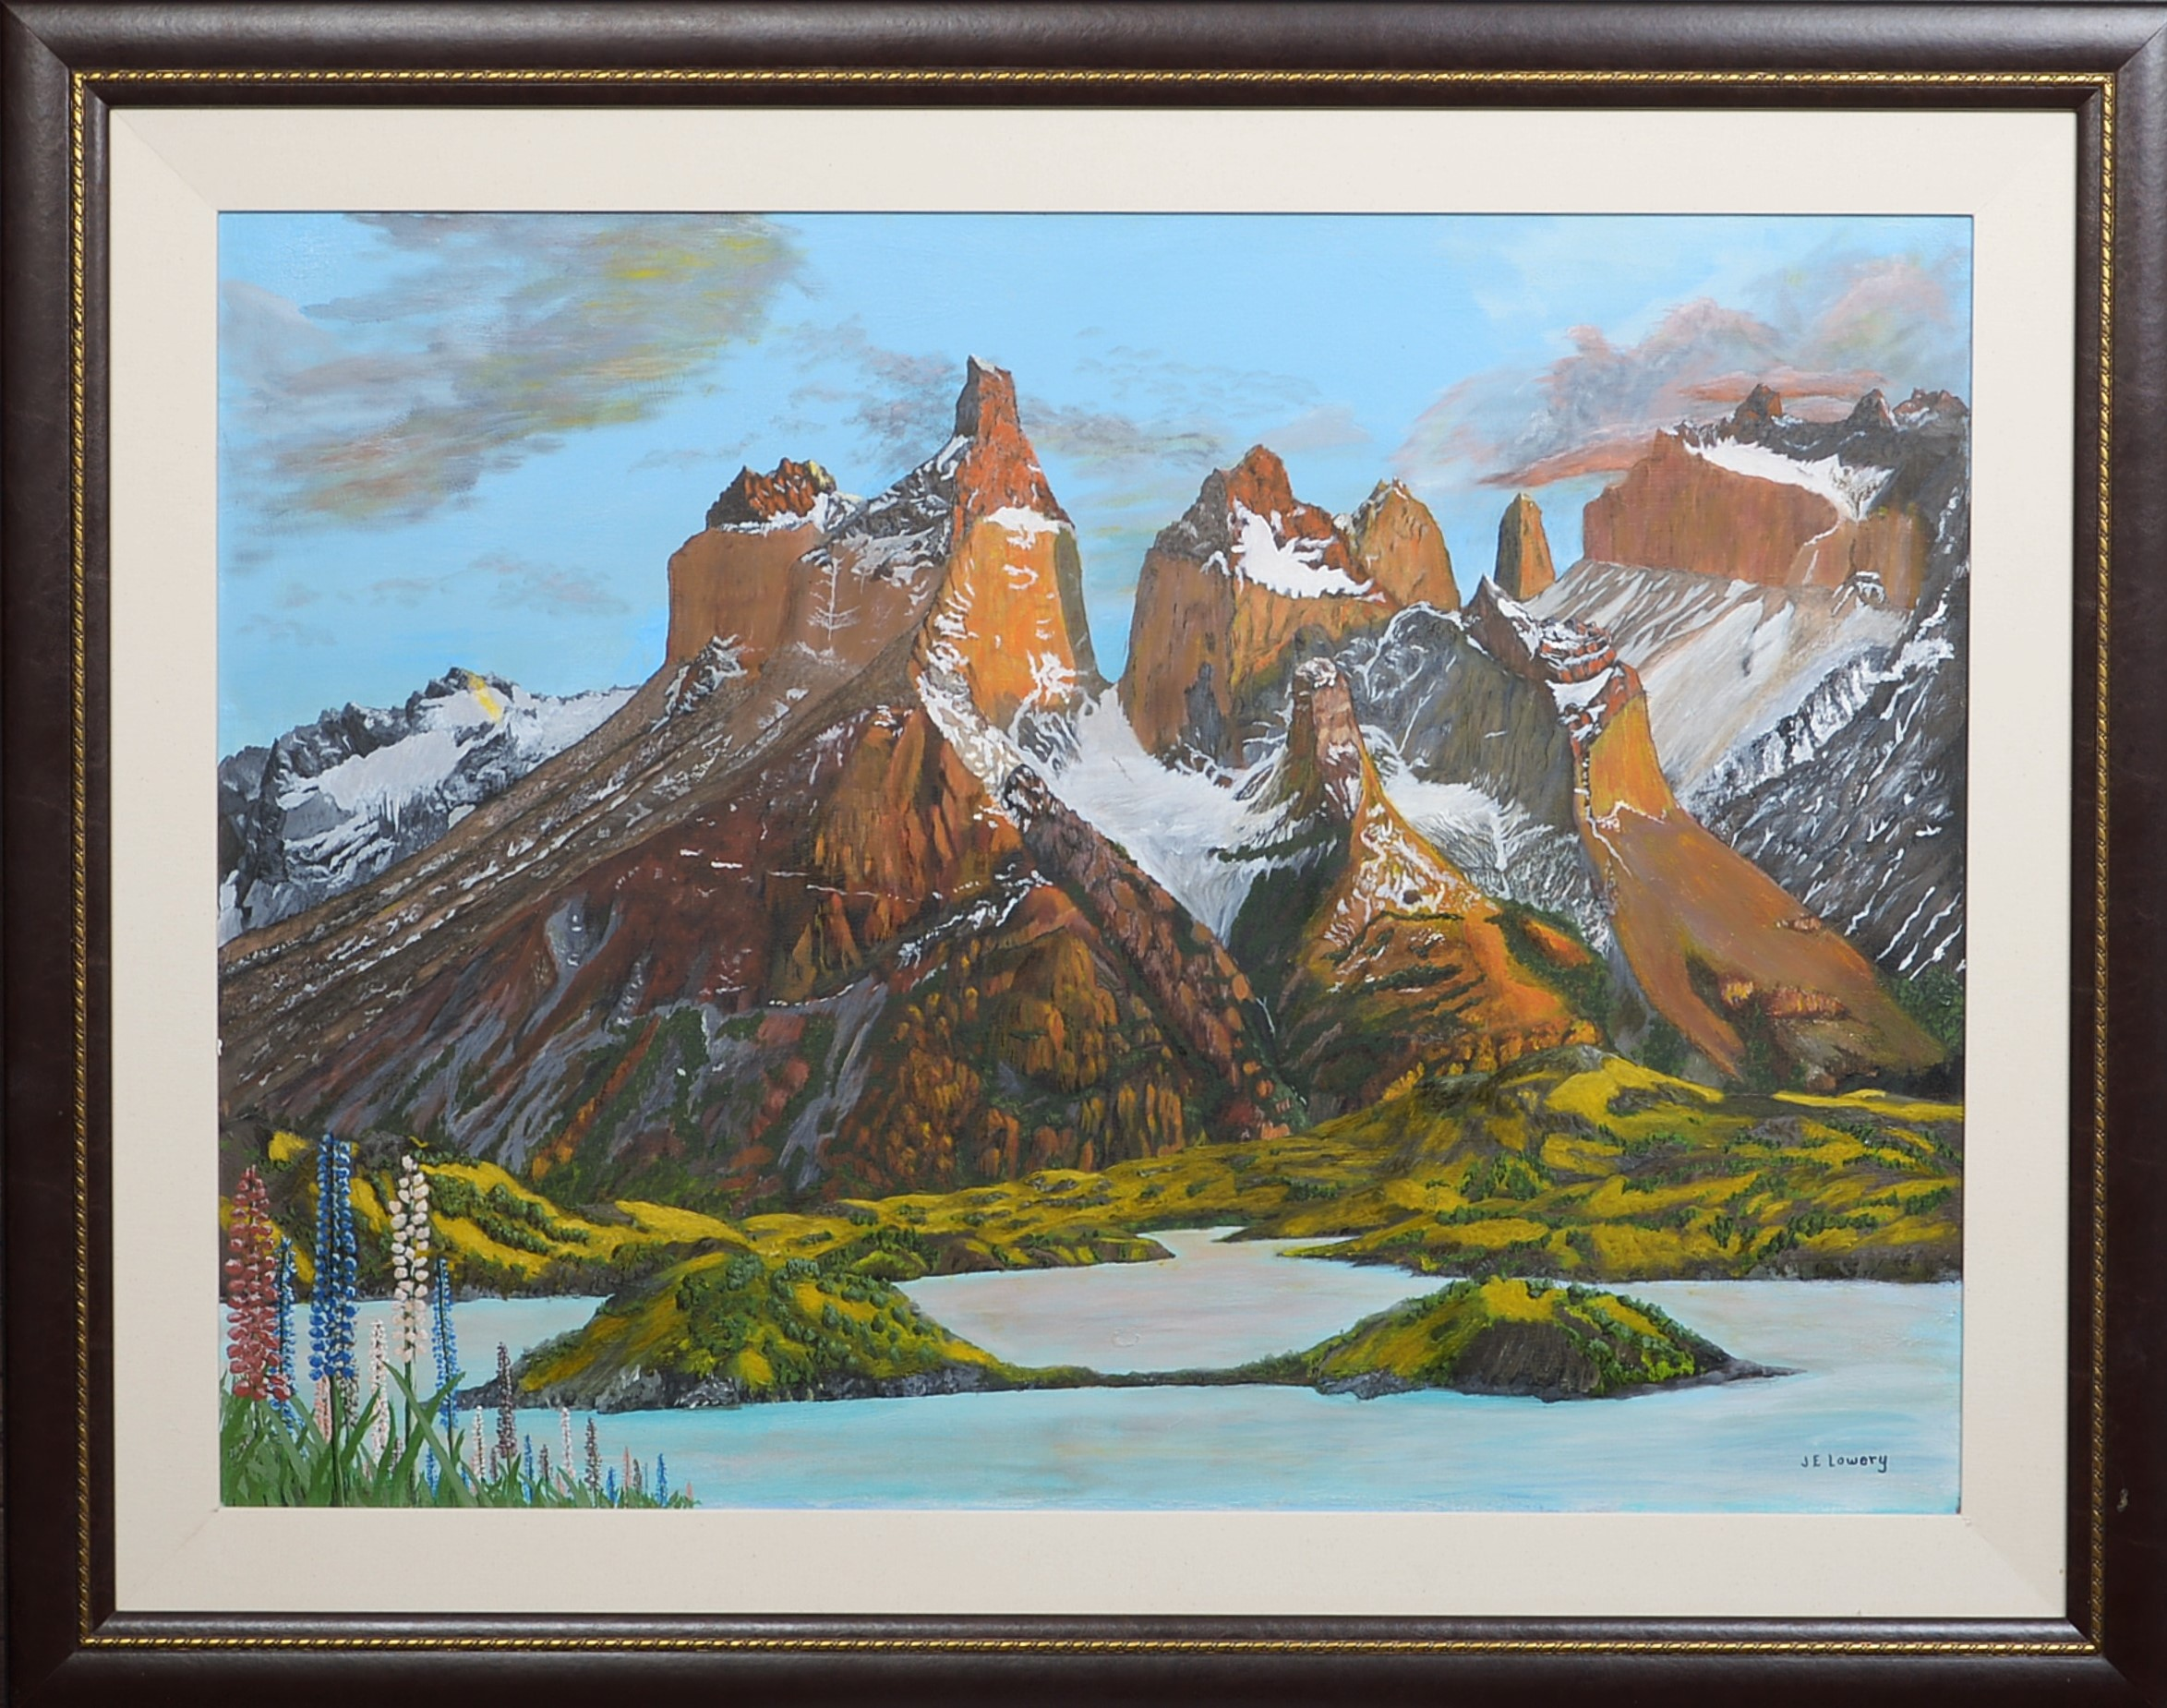 Torres del Paine artwork by James Lowery - art listed for sale on Artplode